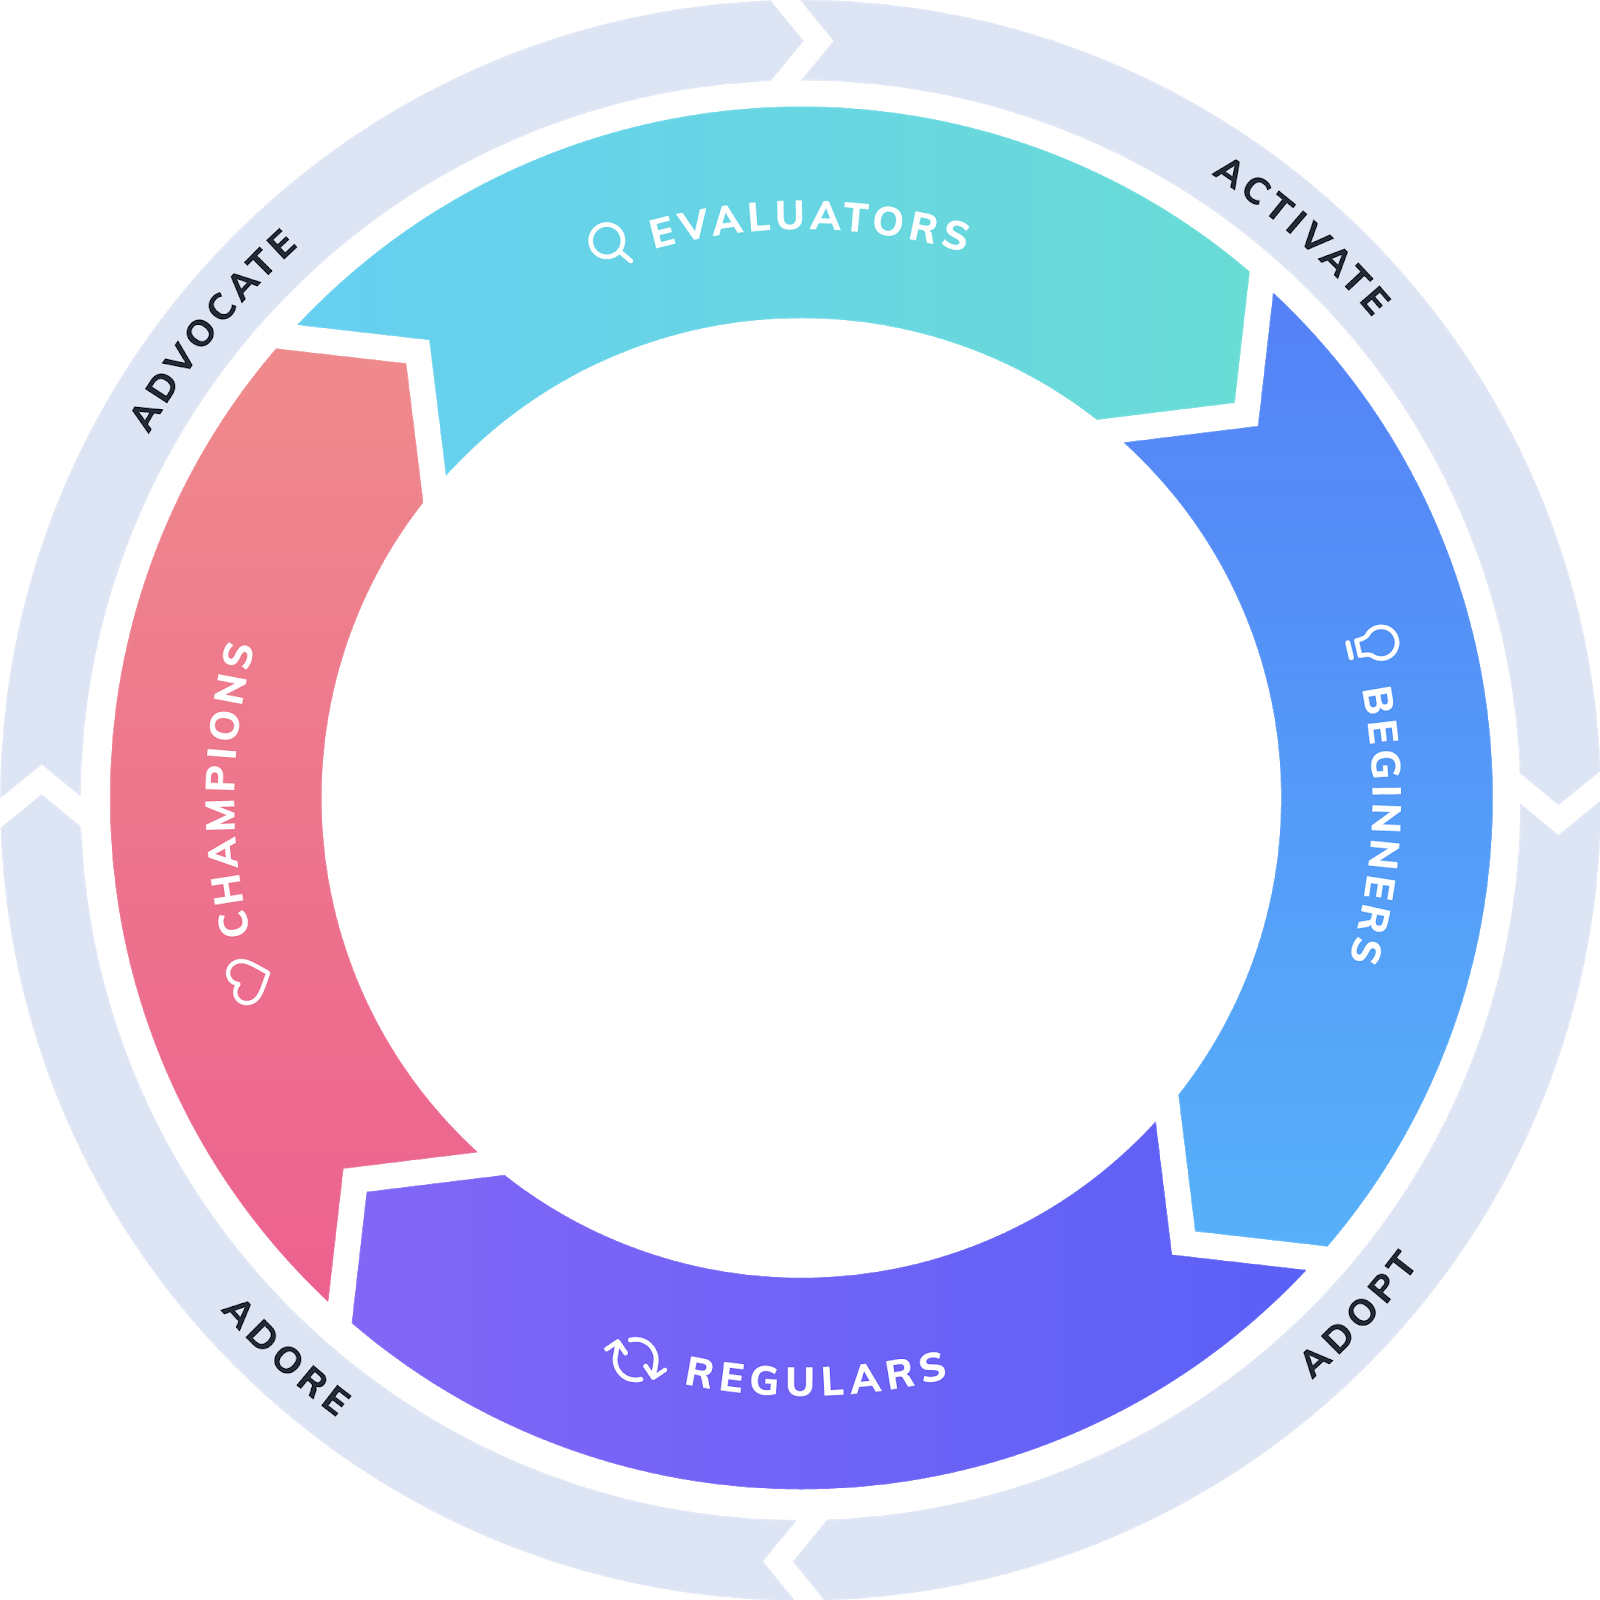 image of the appcues product led growth flywheel showing stages of the user journey from activation, adoption, engagement, and referral